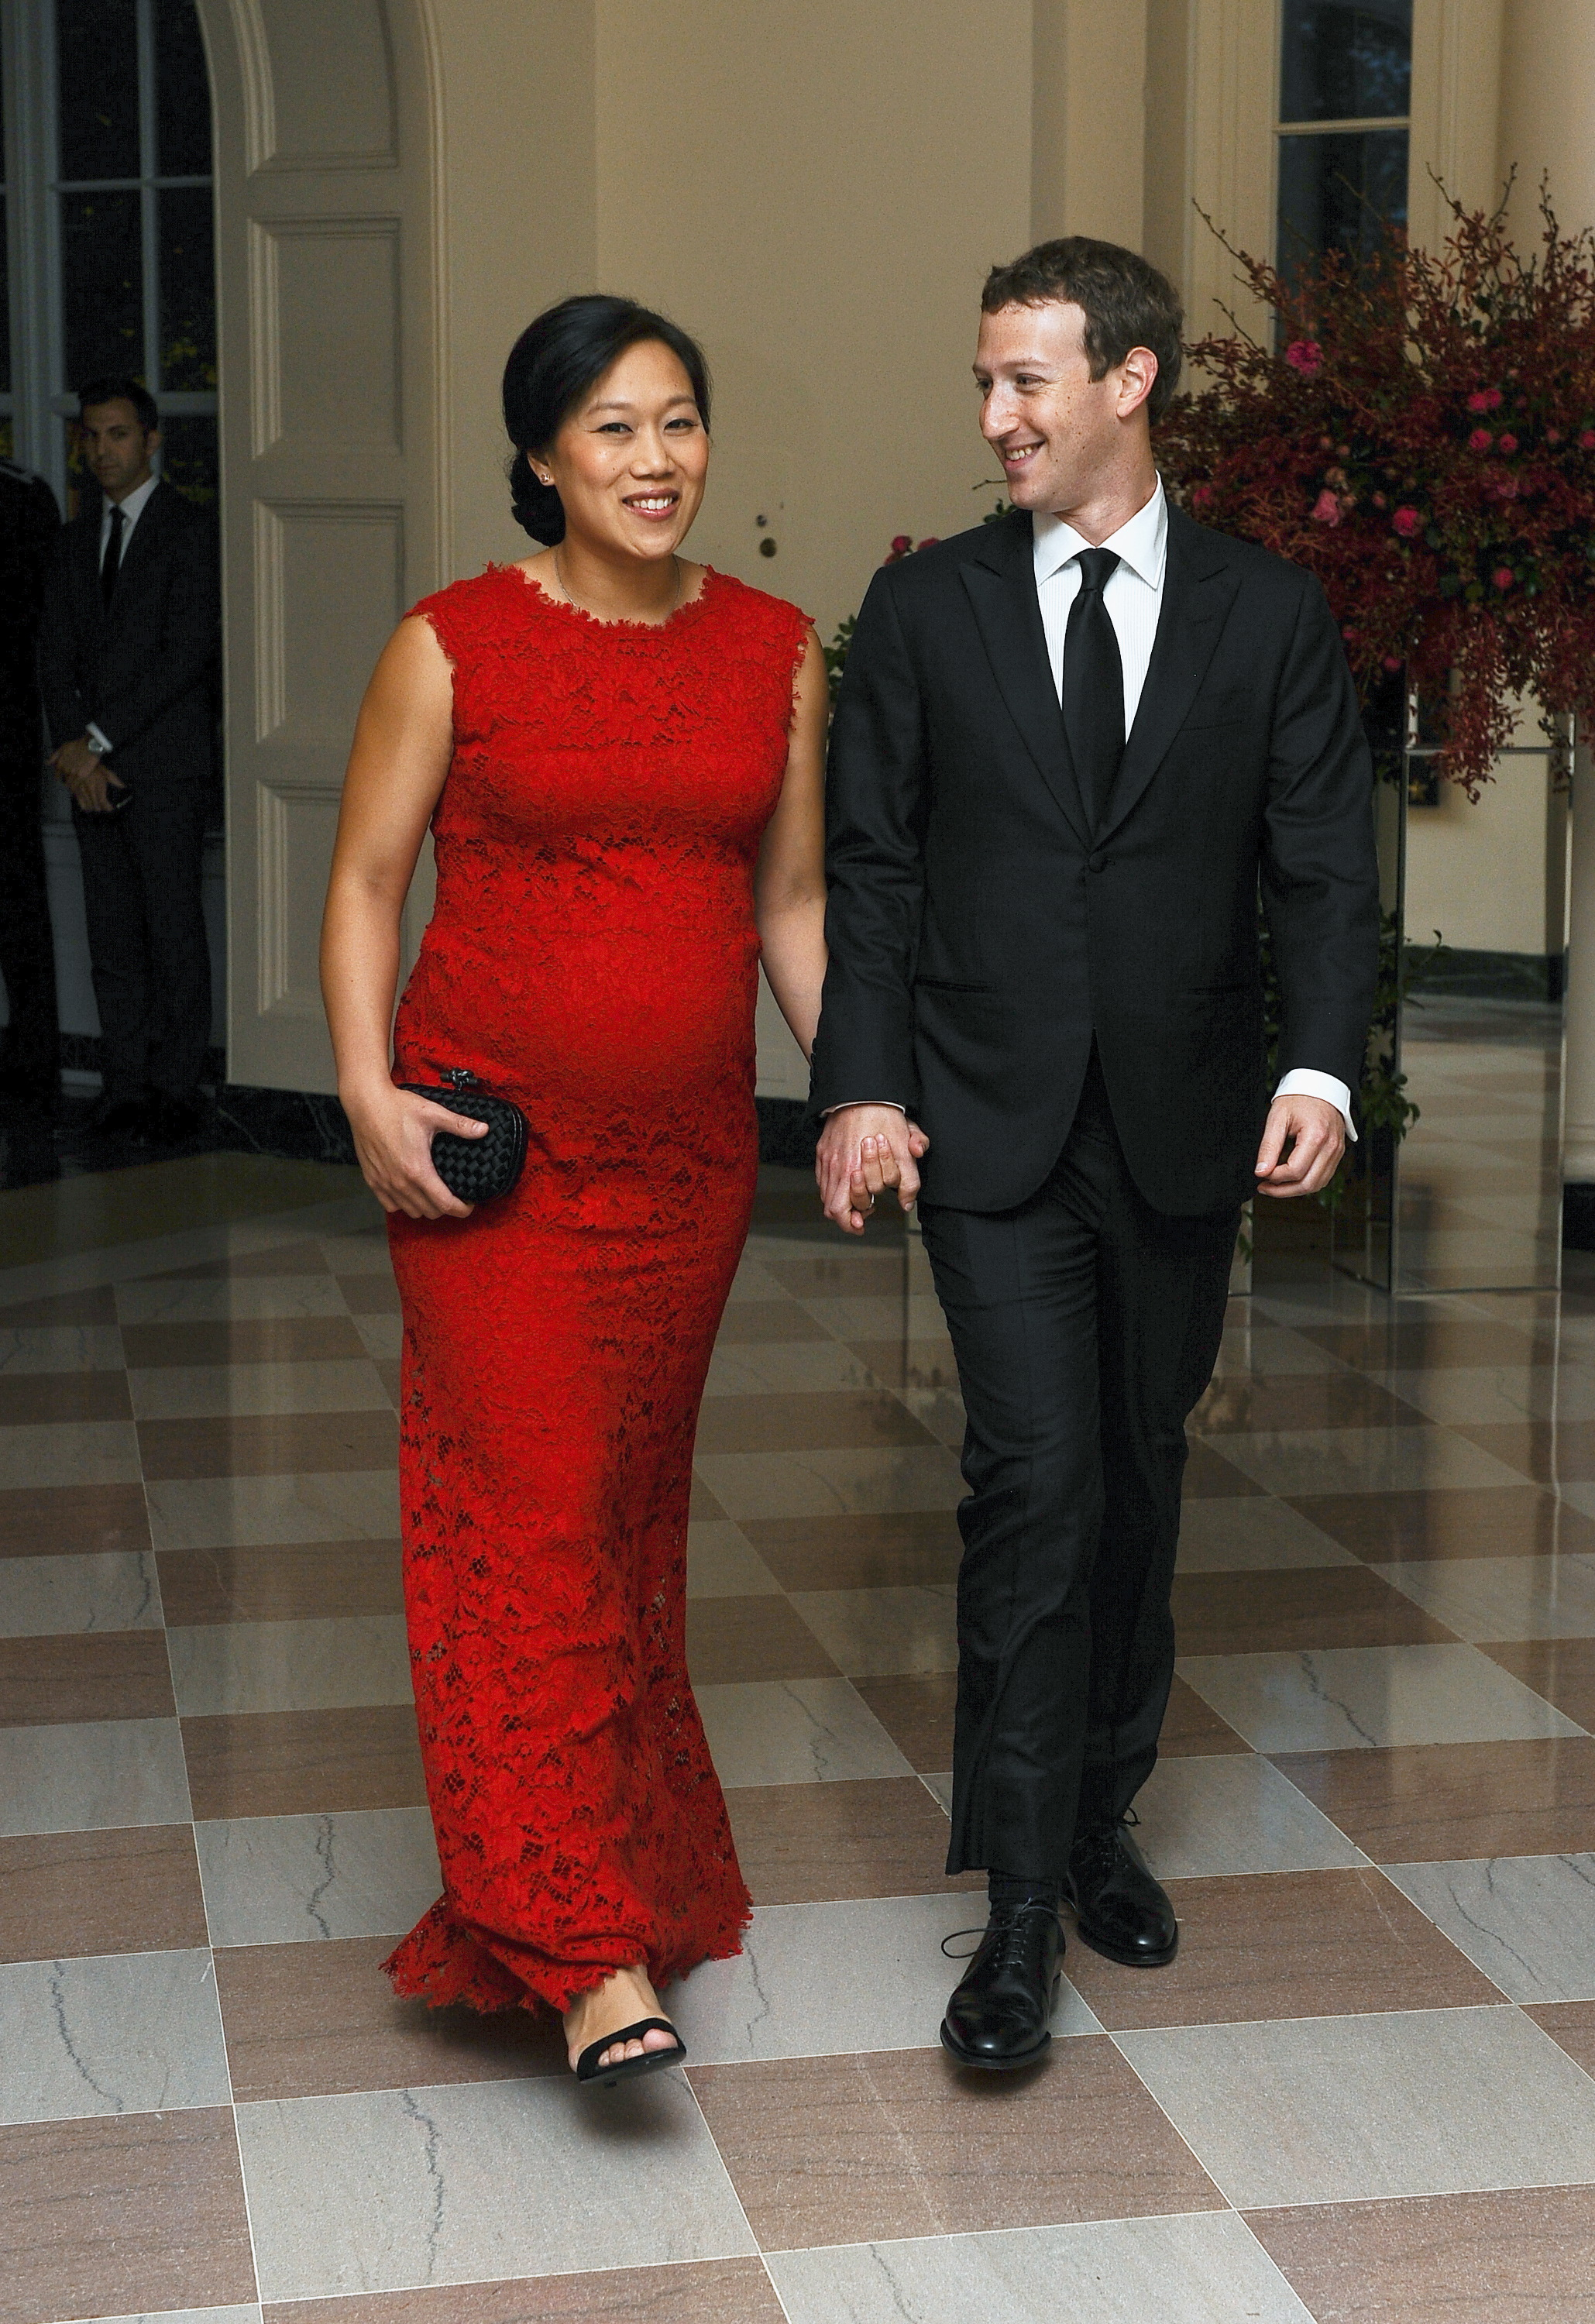 Mark Zuckerberg, Chairman and CEO of Facebook, and his wife Priscilla Chan arrive for the official State dinner for Chinese President Xi Jinping and his wife Peng Liyuan at the White House in Washington, September 25, 2015. REUTERS/Mary F. Calvert